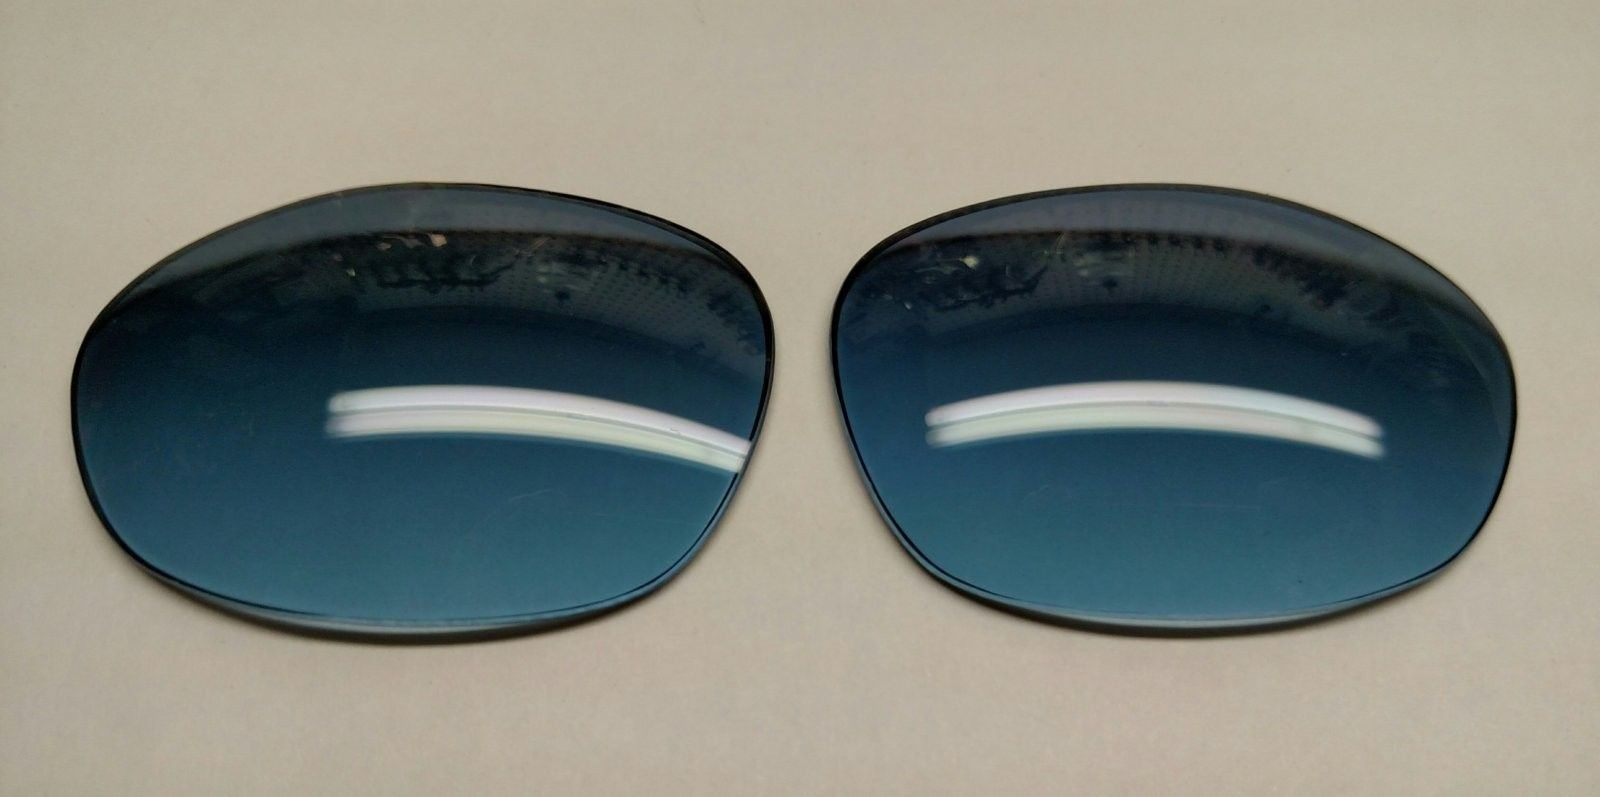 Blue Gradient XX X-Metal Lenses, custom cut, prism corrected $13 - IMG_20160917_161228.jpg